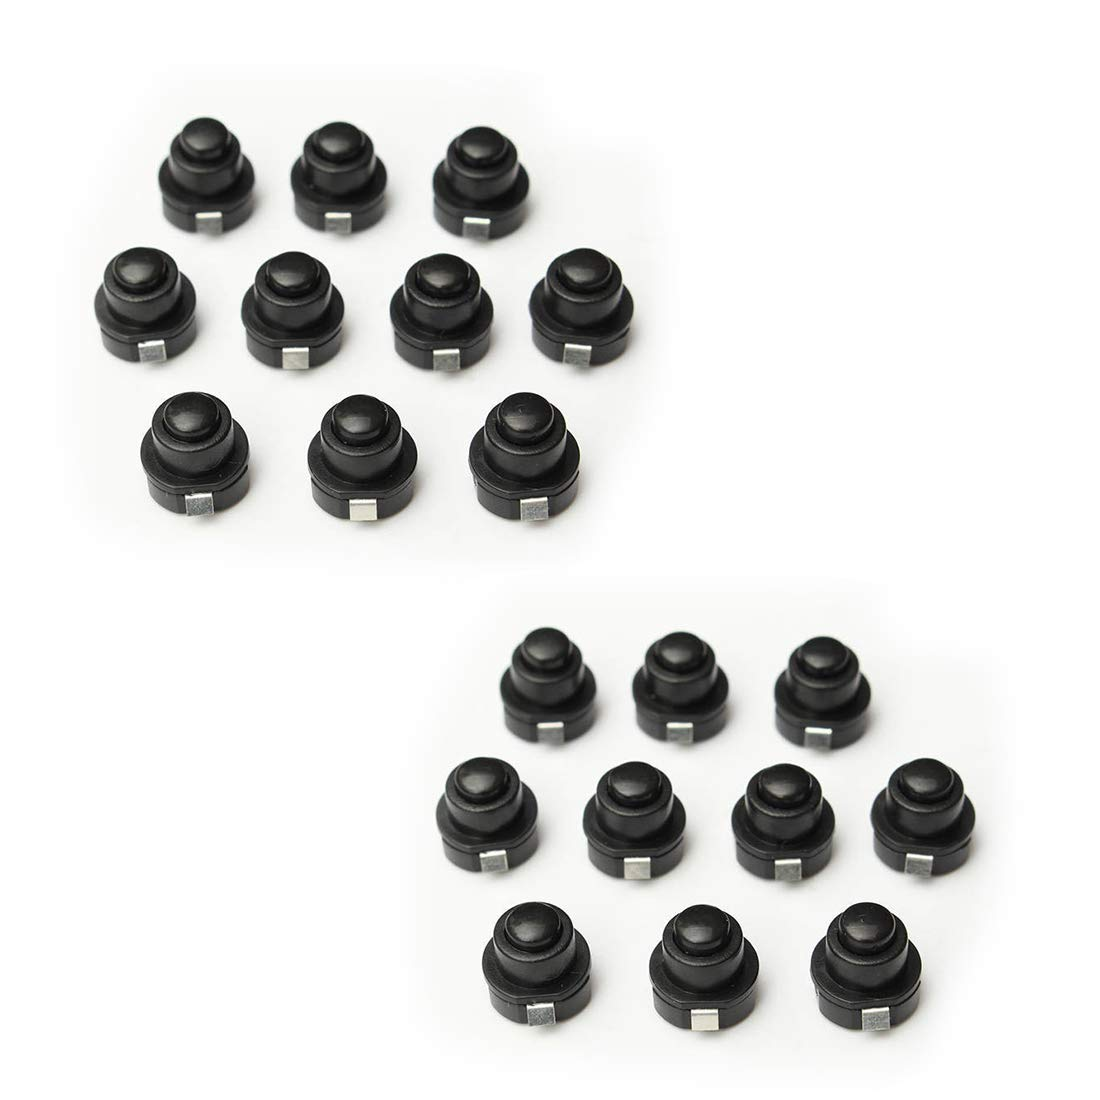 Cyful 20 Pcs Round Latching Flashlight Torch Push Button Switch 125V AC 1A